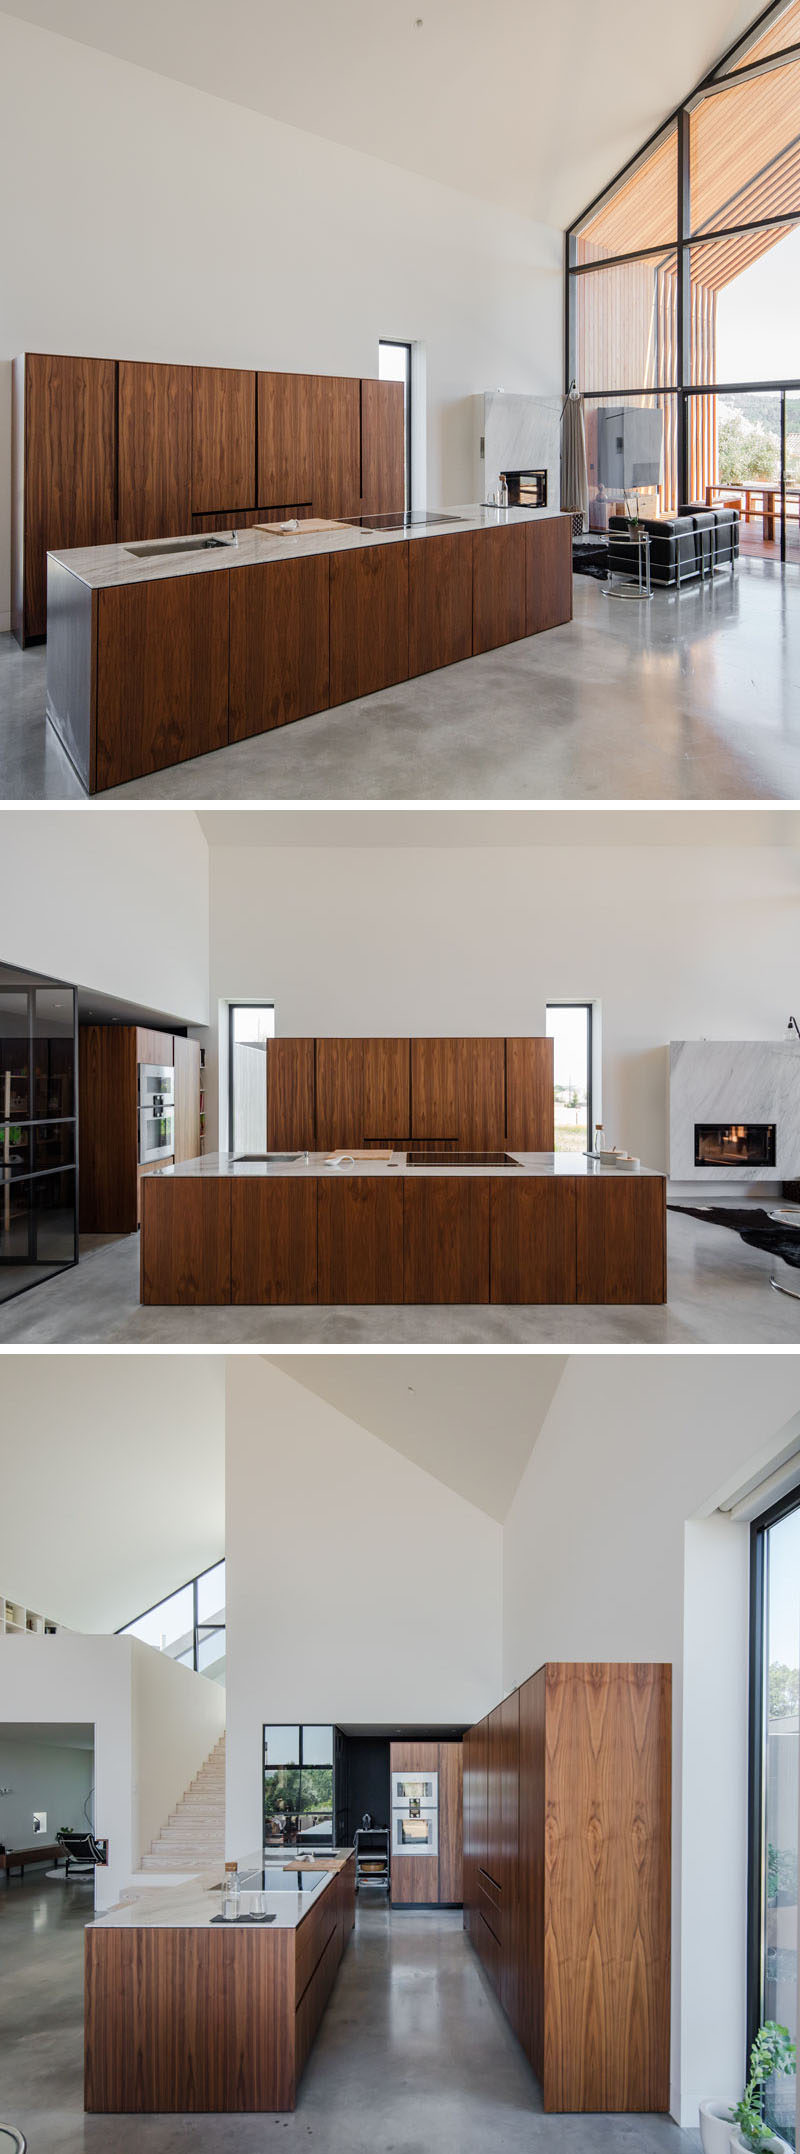 This modern kitchen has wood cabinets with light countertops add a natural element to the mostly white interior. #ModernWoodKitchen #ModernKitchen #KitchenDesign #WoodCabinets